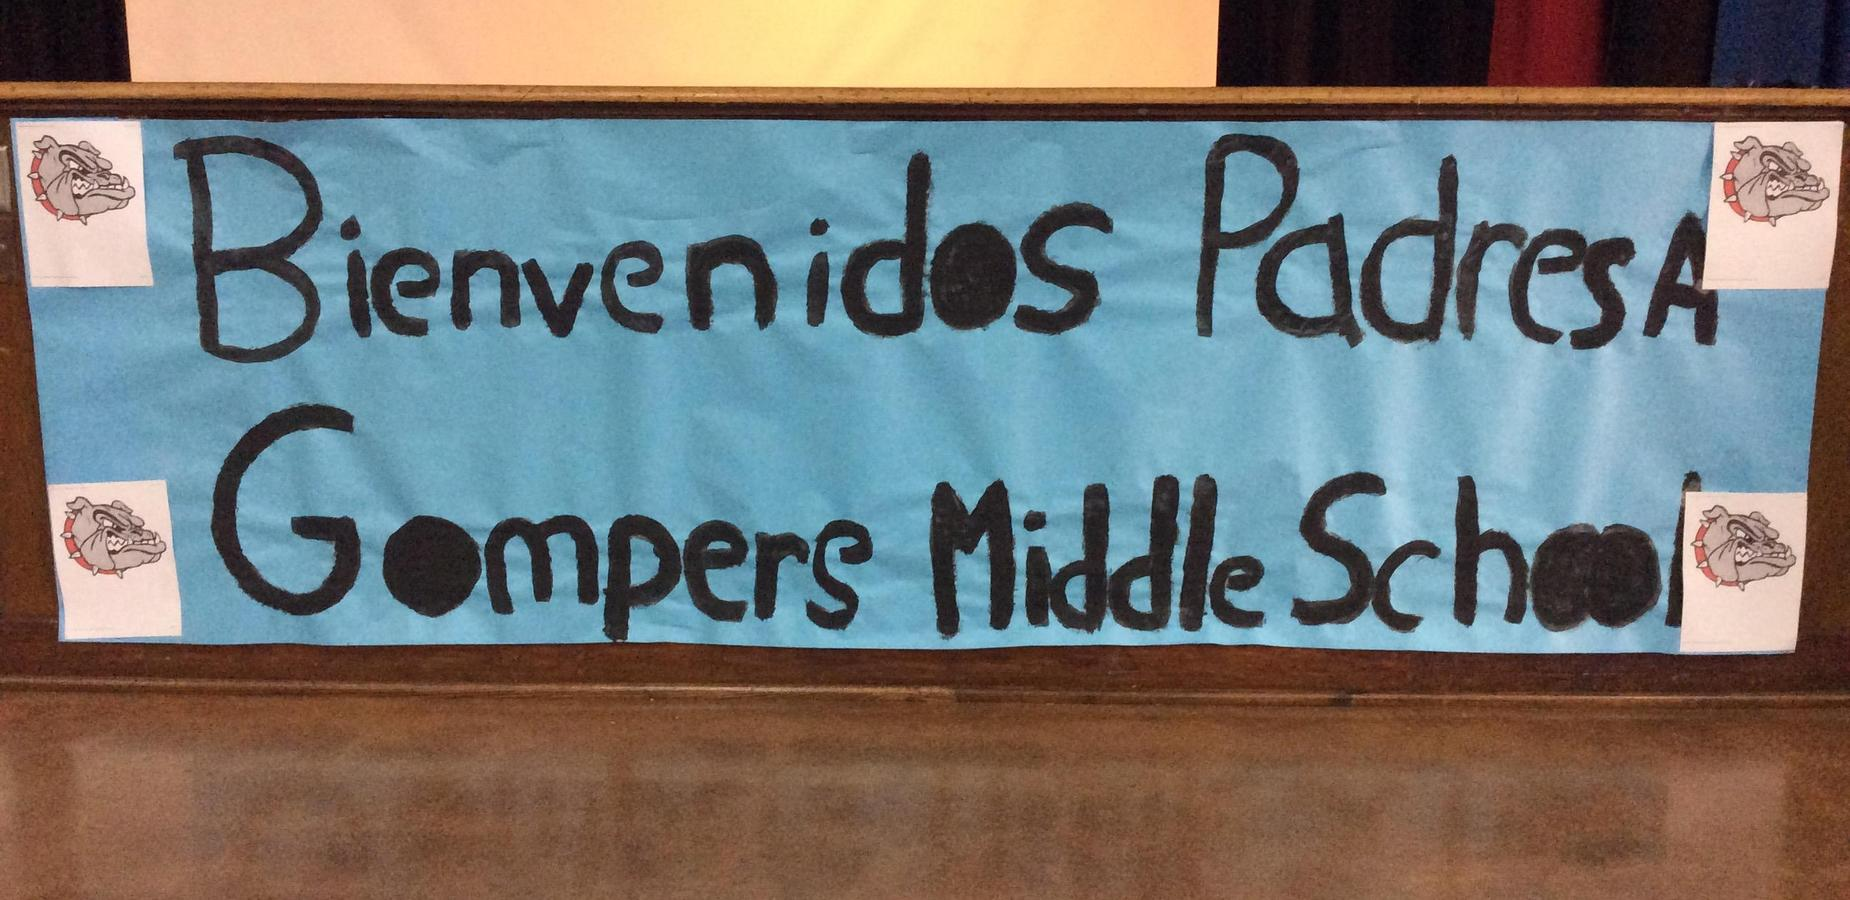 Sign in Spanish that says Bienvenidos Padres A Gompers Middle School